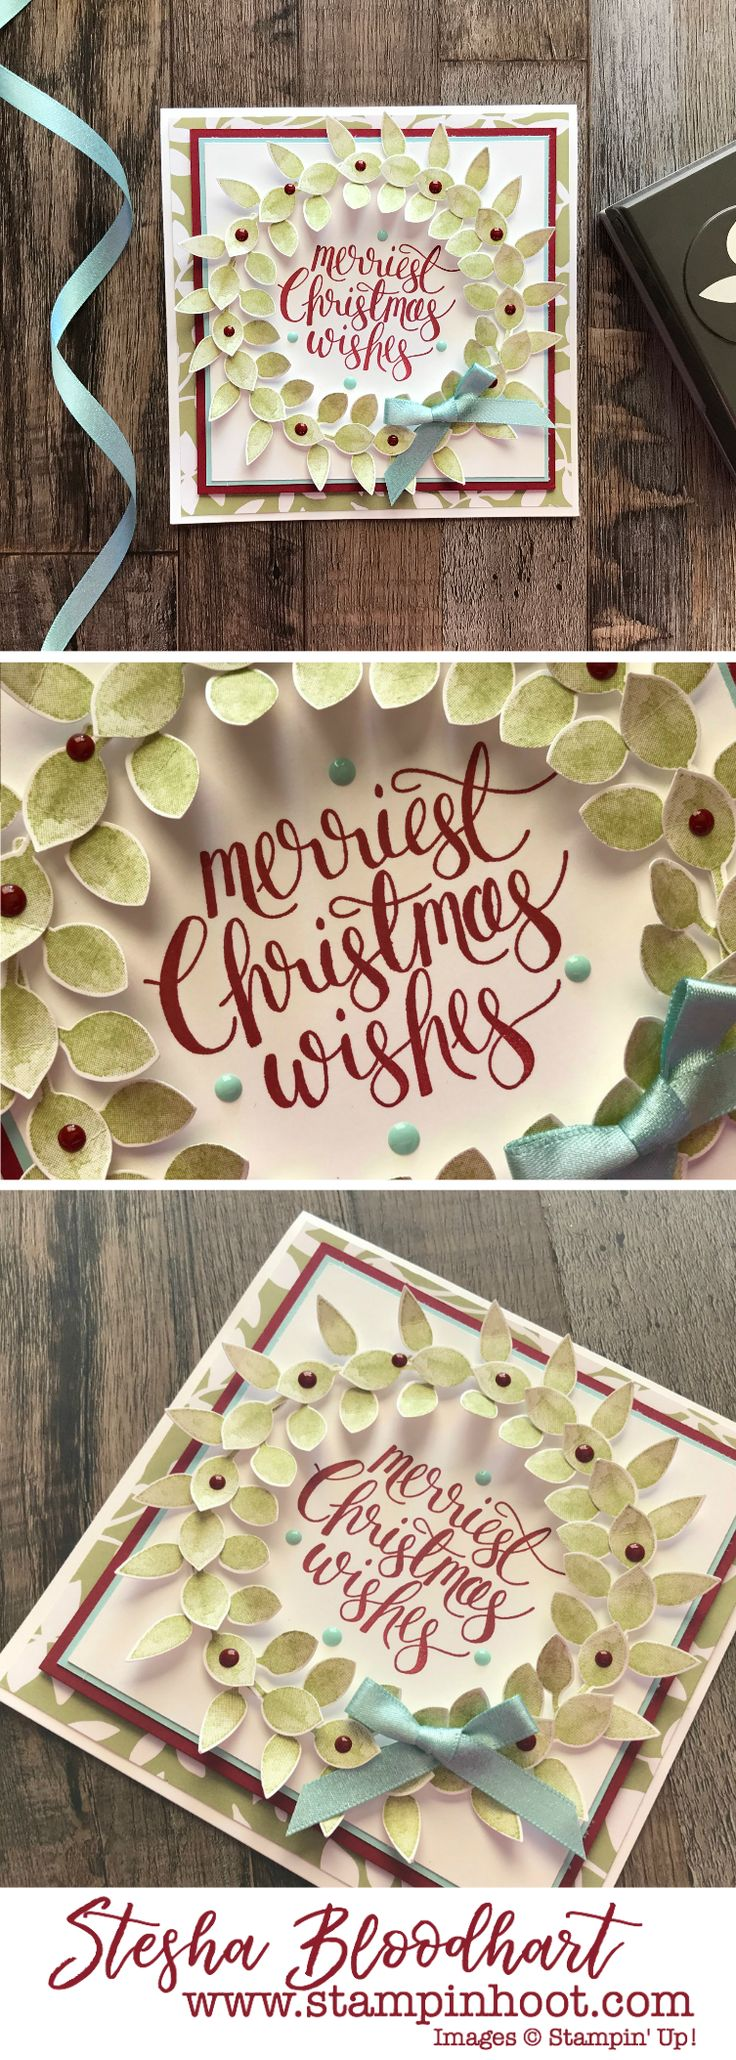 A Wreath Created with the Leaf Punch for #GDP113 Color Challenge. Merriest Christmas Wishes, Watercolor Christmas Stamp Set by Stampin' Up! Painted Harvest by Stampin' Up! #steshabloodhart #stampinhoot